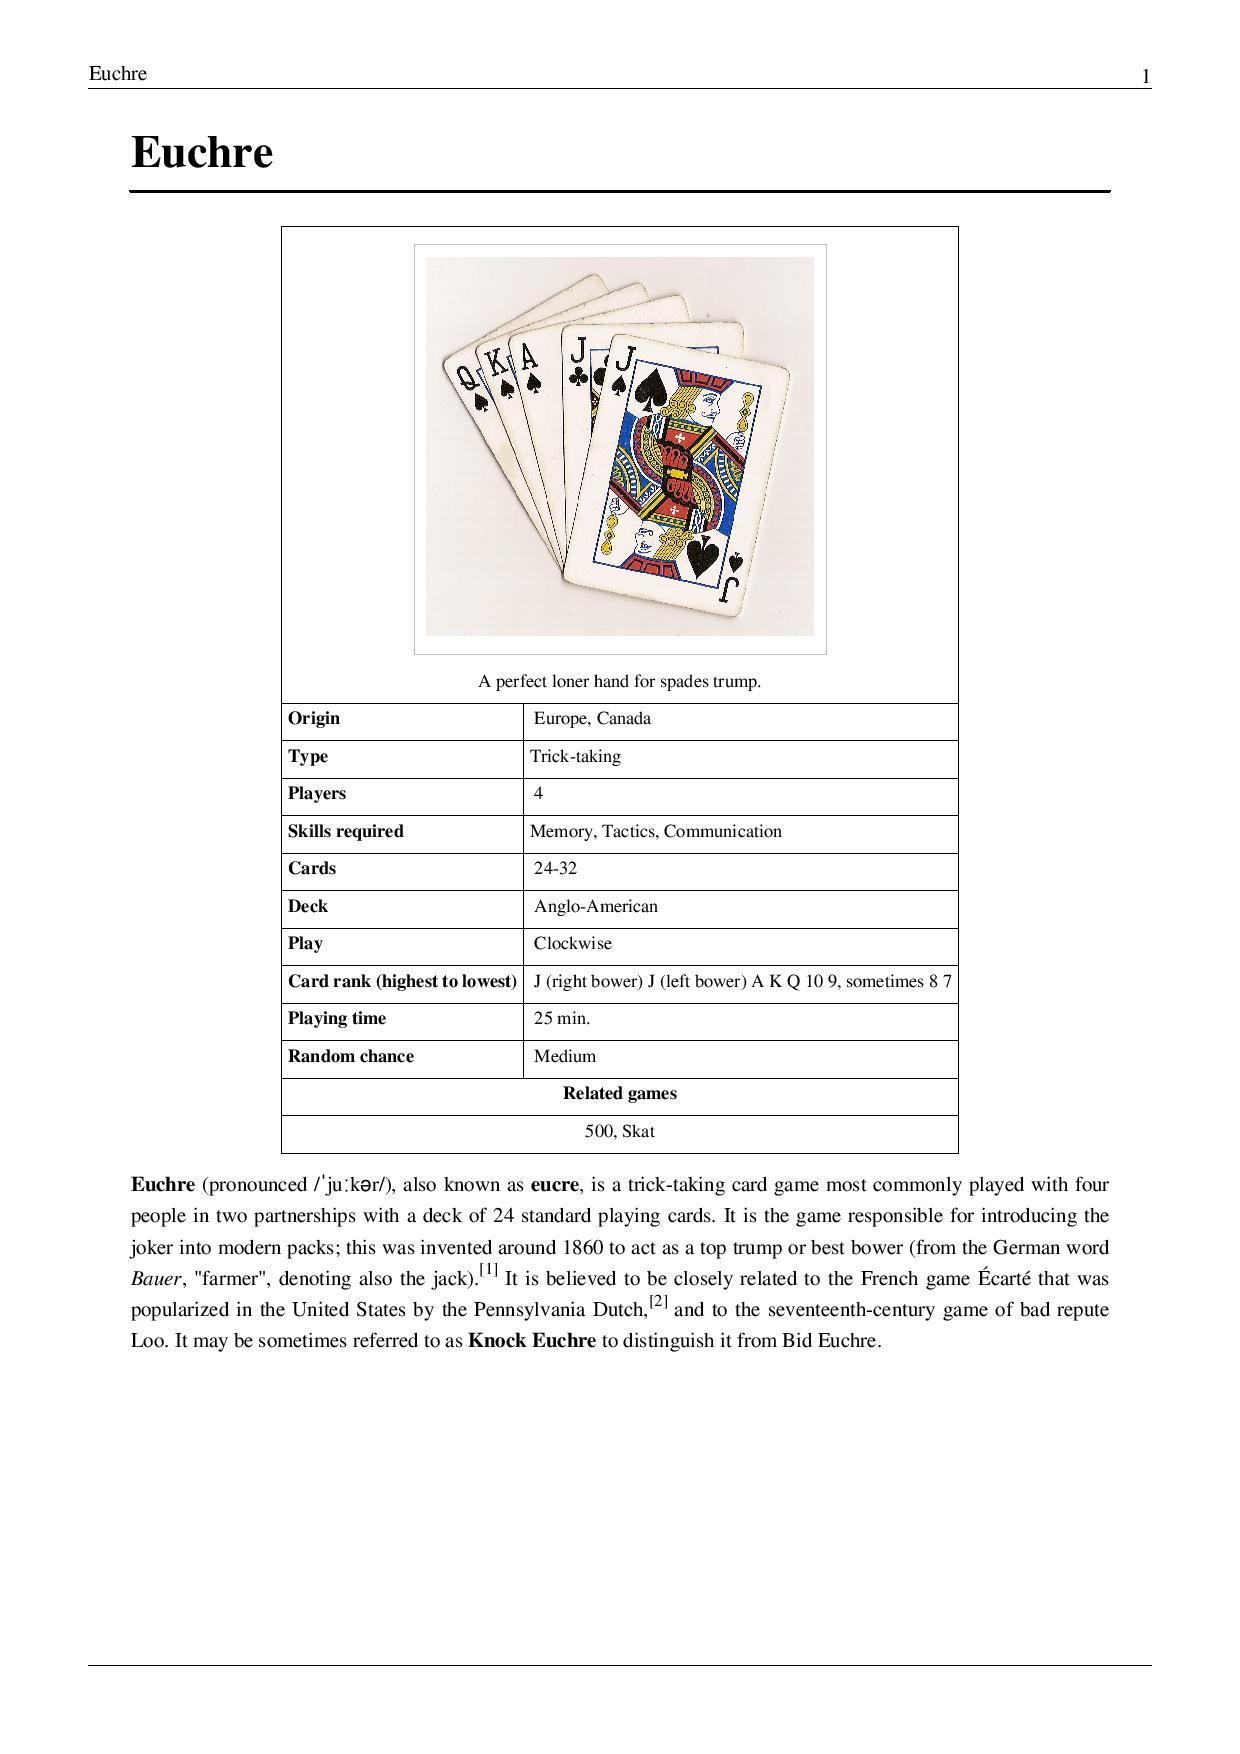 basic-euchre-rules-page-001.jpg